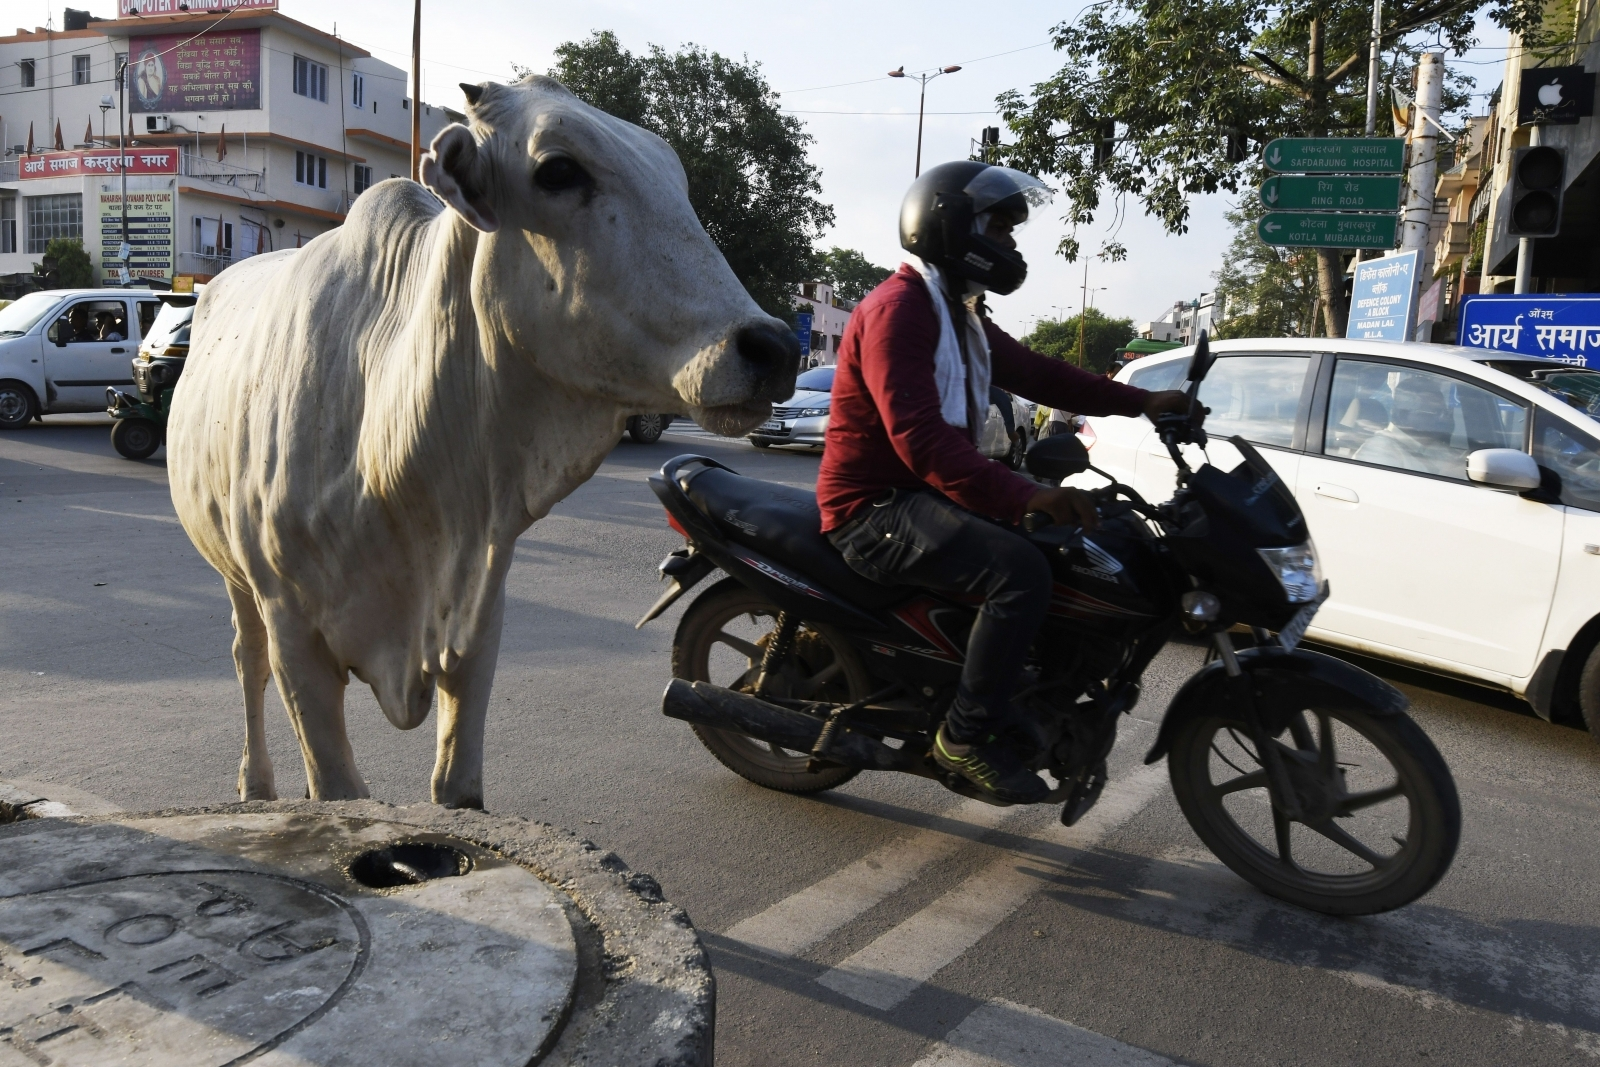 Cows are free to wonder through towns and villages, and steps to protect them from harm have stepped up under the ruling Hindu nationalist Bharatiya Janata Party (BJP)